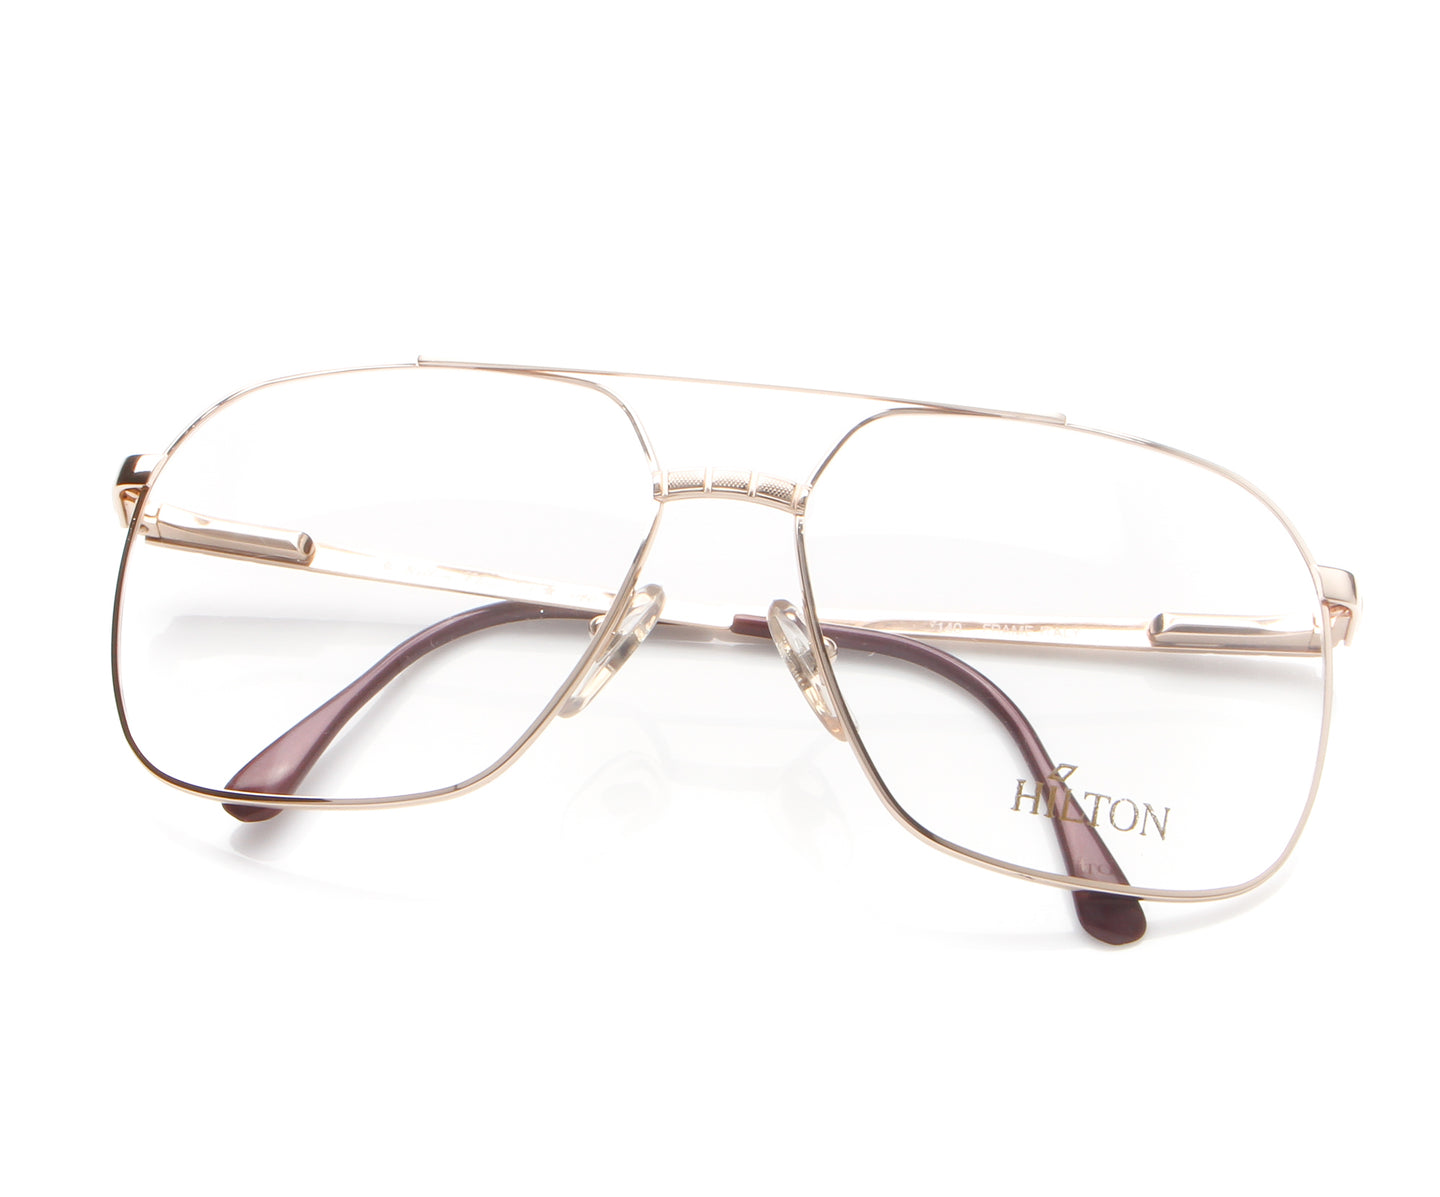 Vintage Hilton Class 006 020 E39 24KT Thumb, Hilton , glasses frames, eyeglasses online, eyeglass frames, mens glasses, womens glasses, buy glasses online, designer eyeglasses, vintage sunglasses, retro sunglasses, vintage glasses, sunglass, eyeglass, glasses, lens, vintage frames company, vf